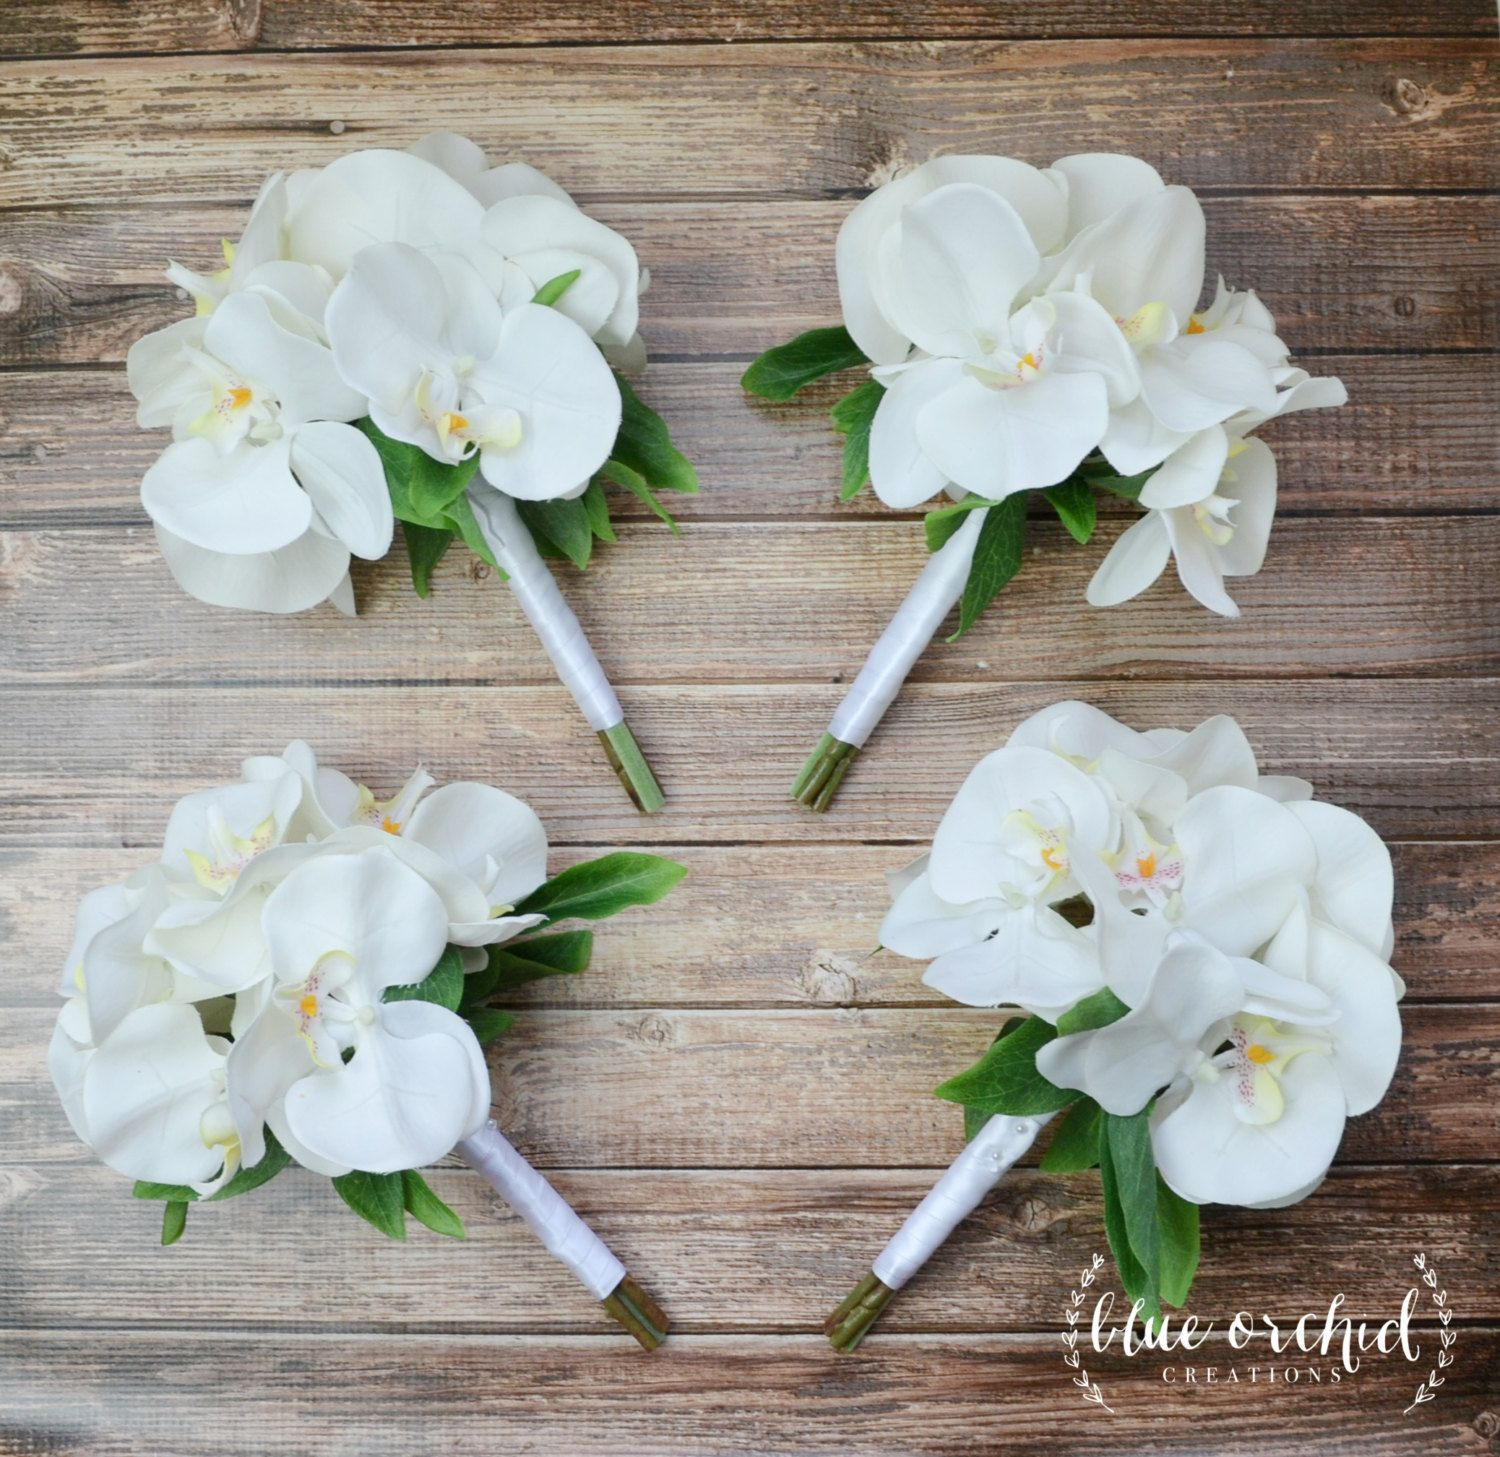 White orchid bridesmaid bouquets Perfect for tropical beach or destination weddings Petite bridesmaid bouquet white bridesmaid bouquet orchid bouquet